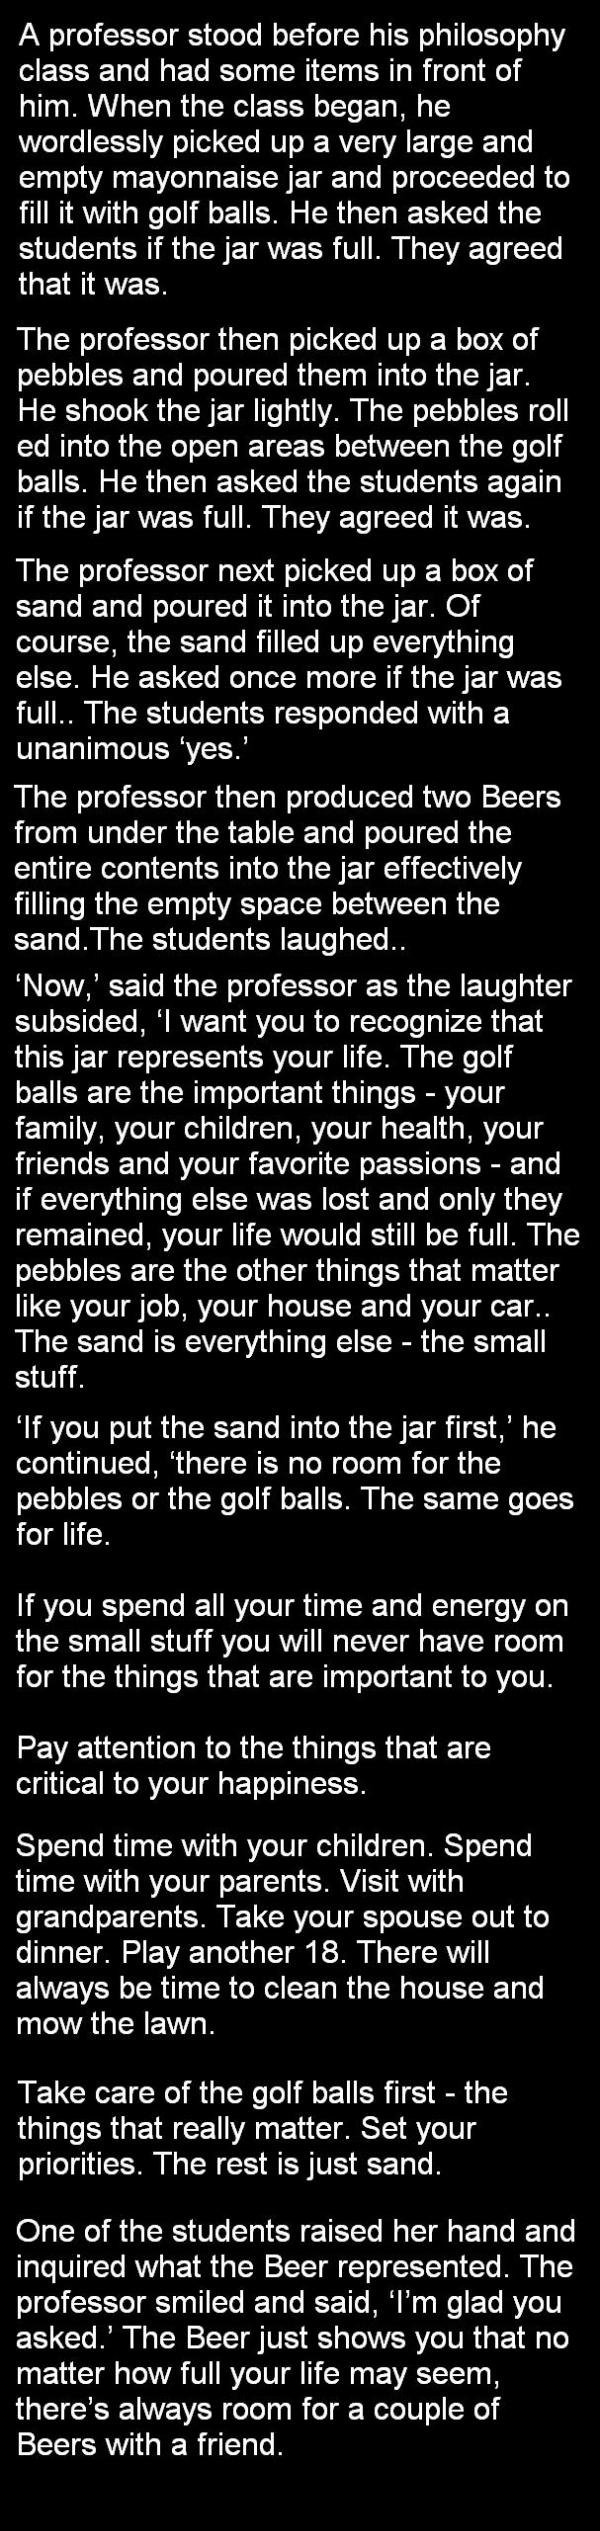 Take Care of the Golf Balls. . A professor stood before his philosophy class and had some items in front of him. When the class began, he wordlessly picked up a